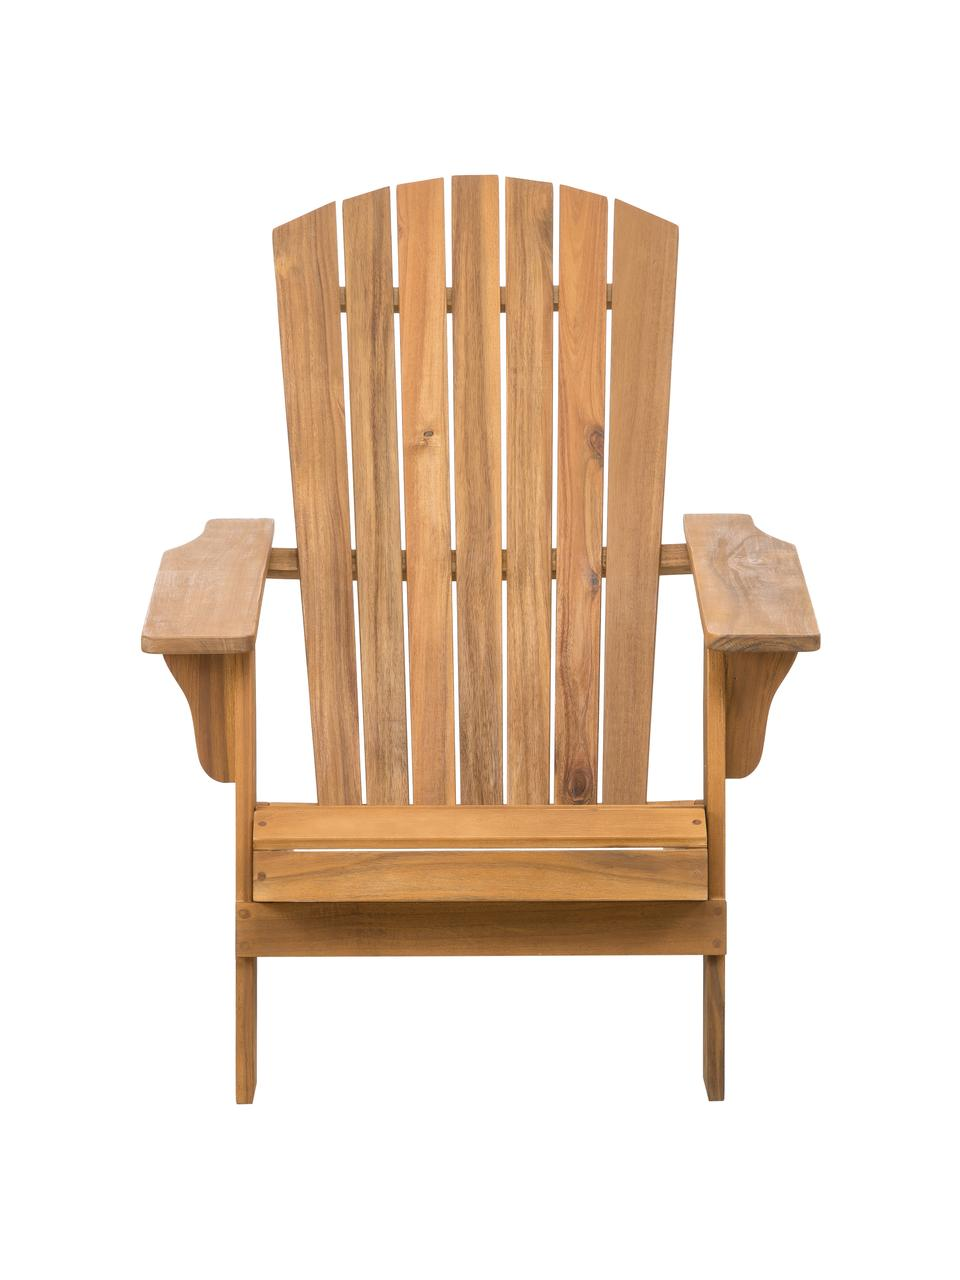 Acaciahouten tuin loungestoel Charlie in wit, Massief geolied acaciahout, Bruin, B 93  x D 74 cm